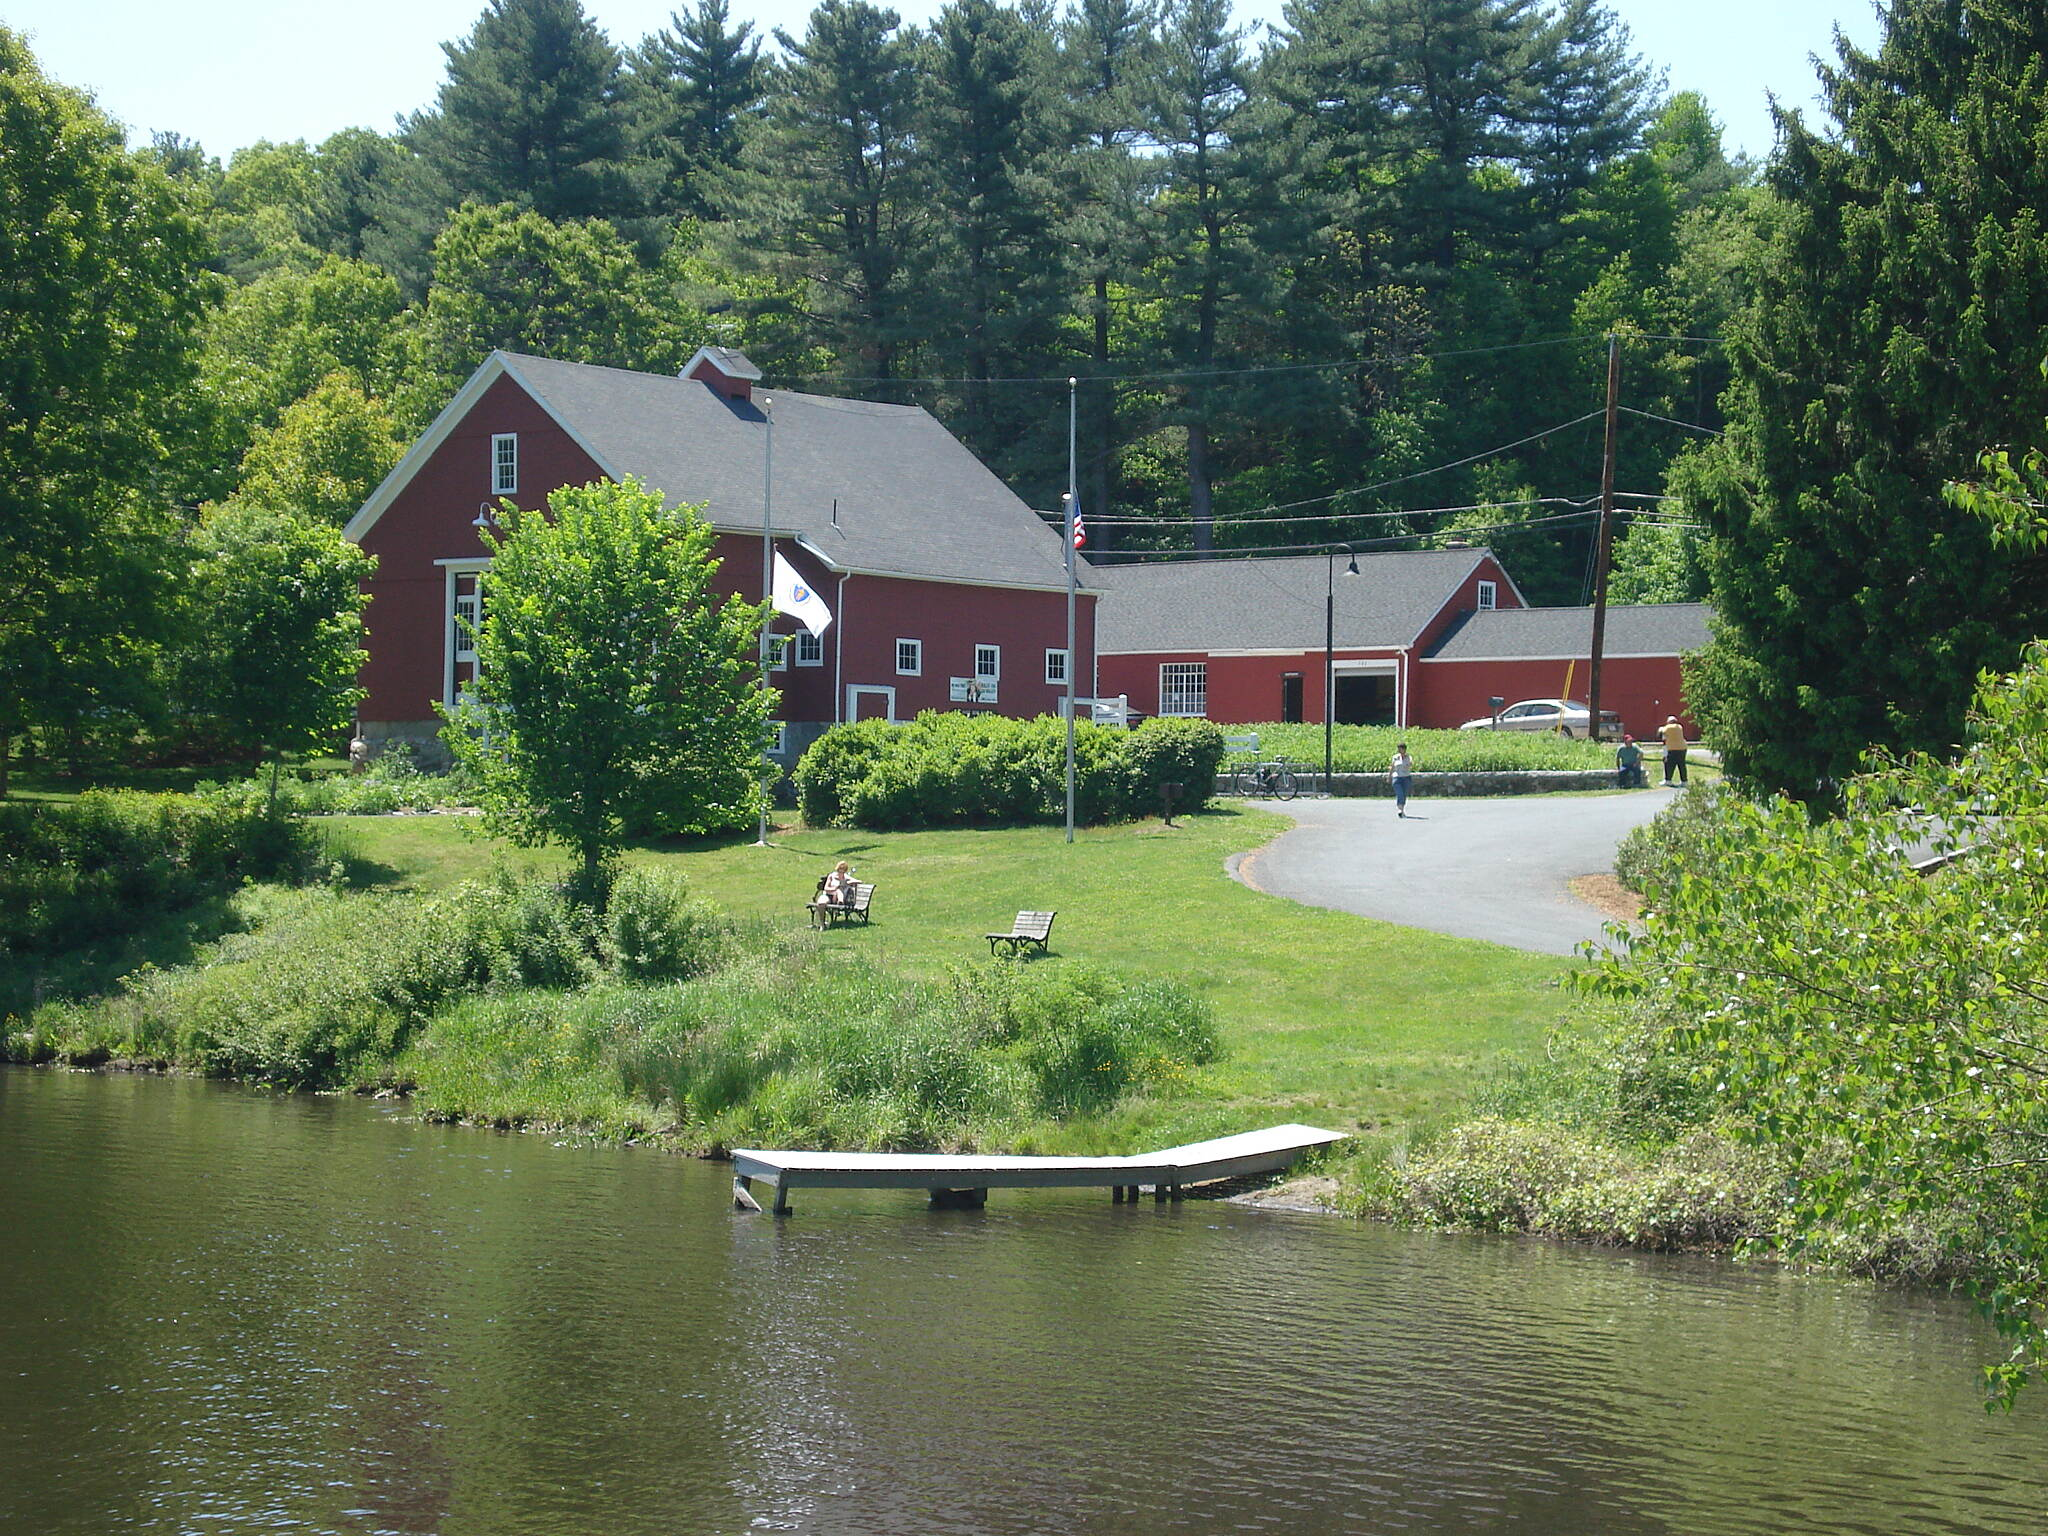 Blackstone River and Canal Heritage State Park Trail Riverbend Farm visitors center viewed from the towpath